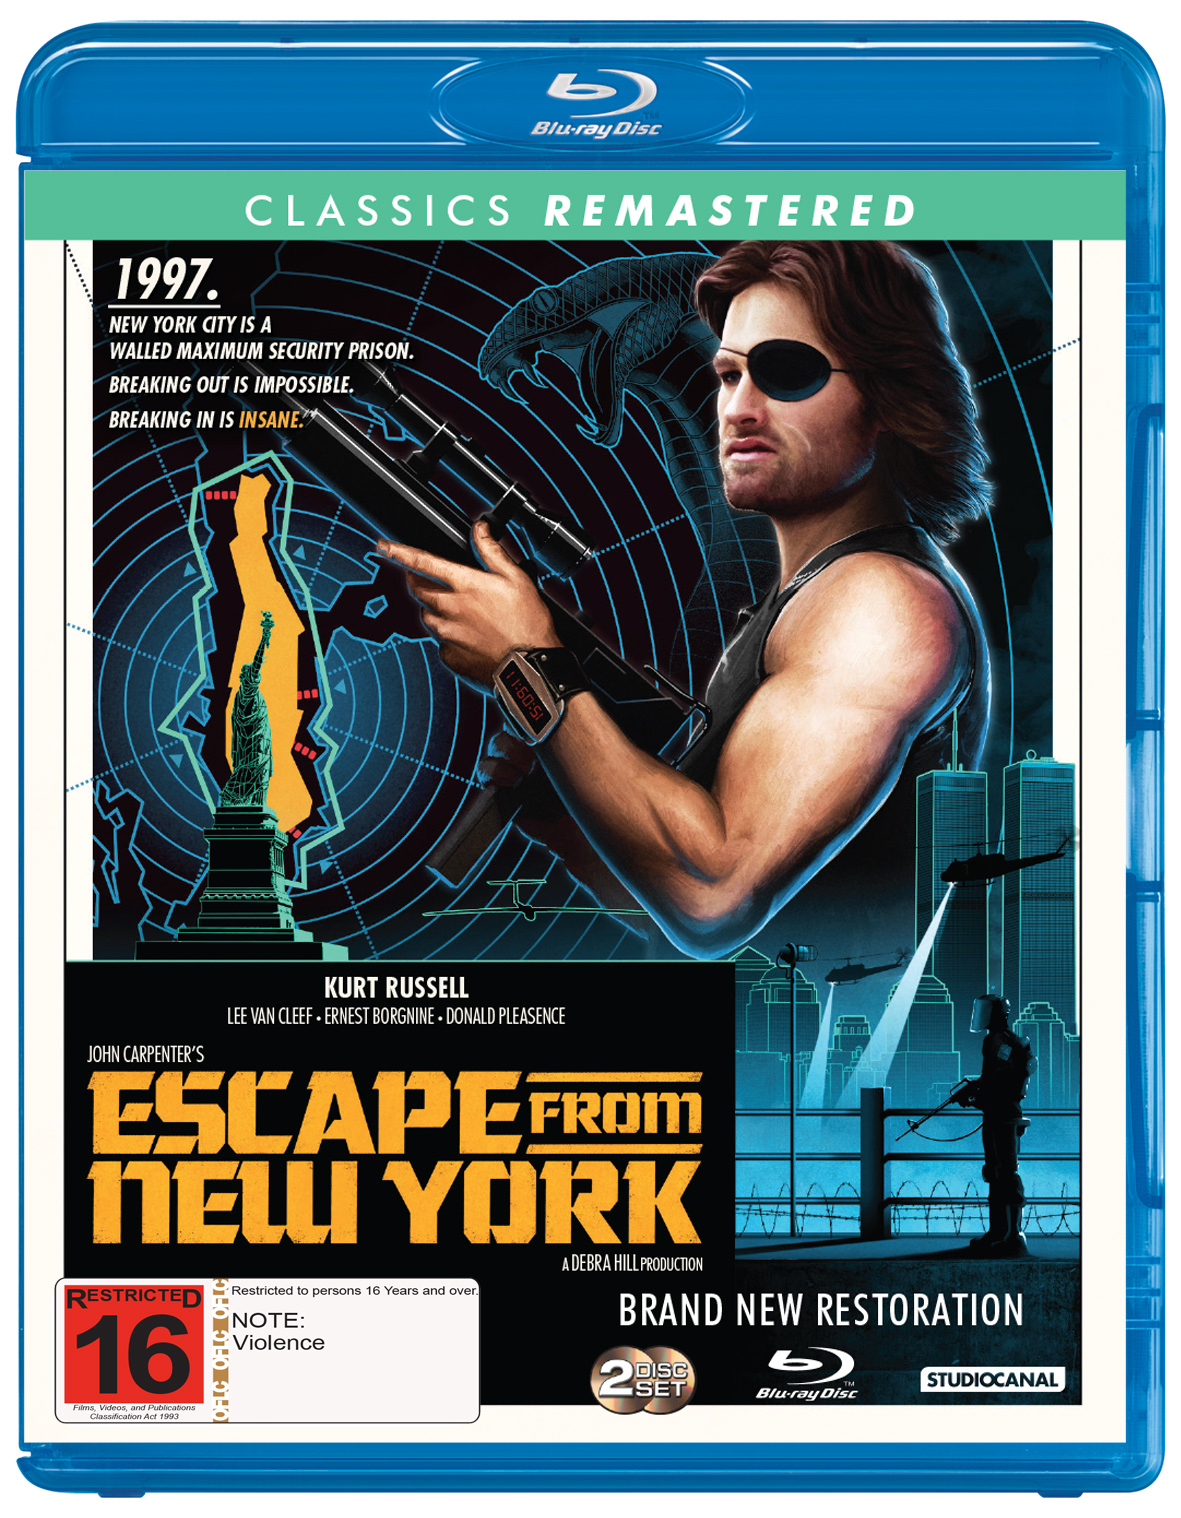 Escape From New York (1981) on Blu-ray image